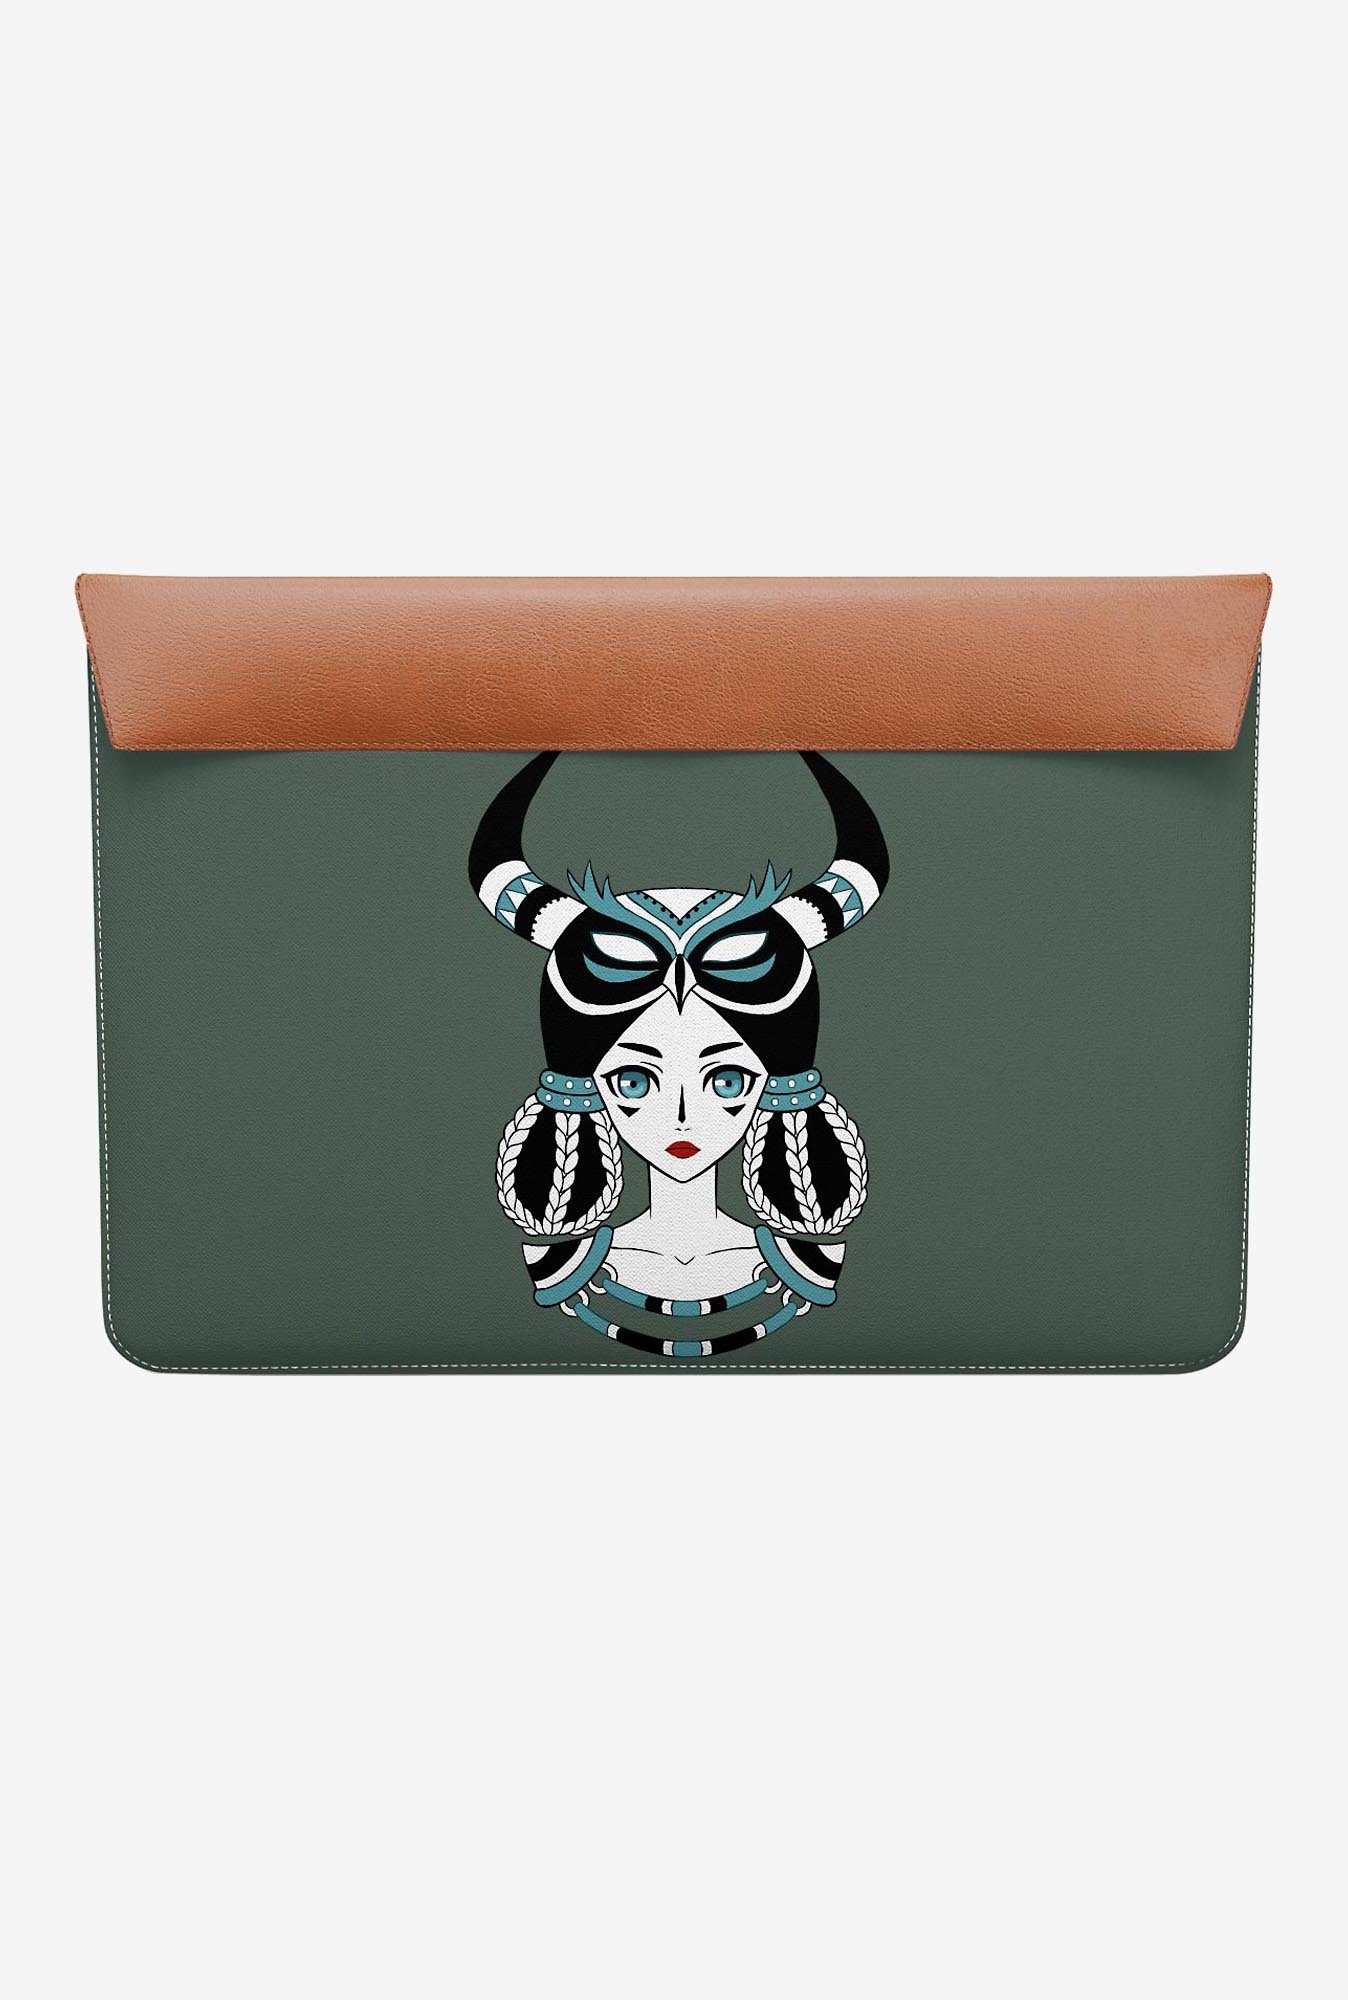 DailyObjects Owl Tribe MacBook Air 11 Envelope Sleeve